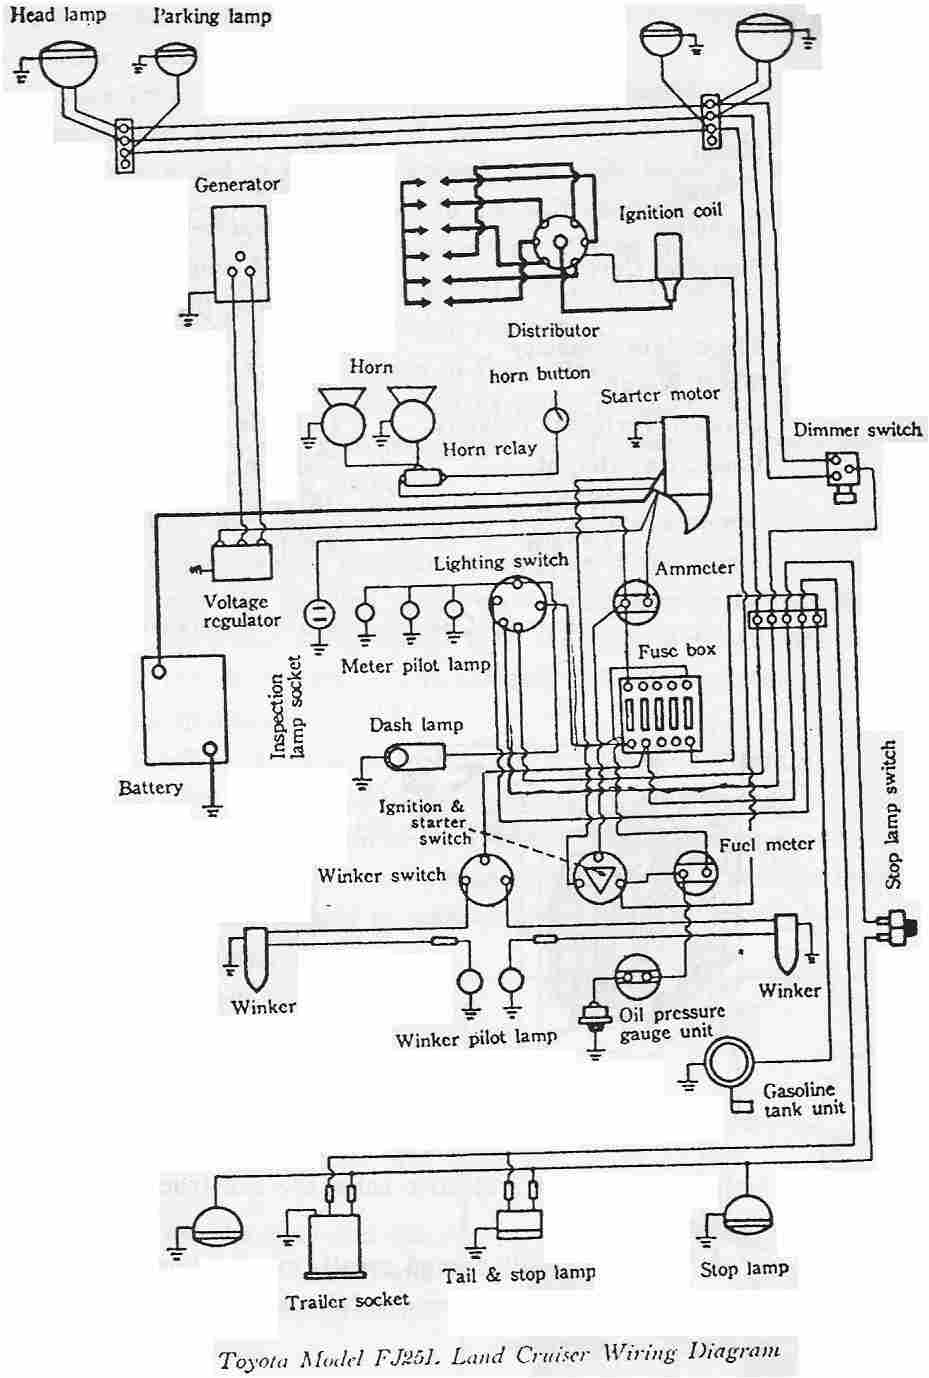 Toro Wiring Diagrams 20 Diagram S. Toyota Land Cruiser Fj25 Electrical Wiring Diagram For Toro Proline 724 Z Lawnsite. Wiring. Toro Zero Turn Model 74360 Wiring Diagram At Scoala.co